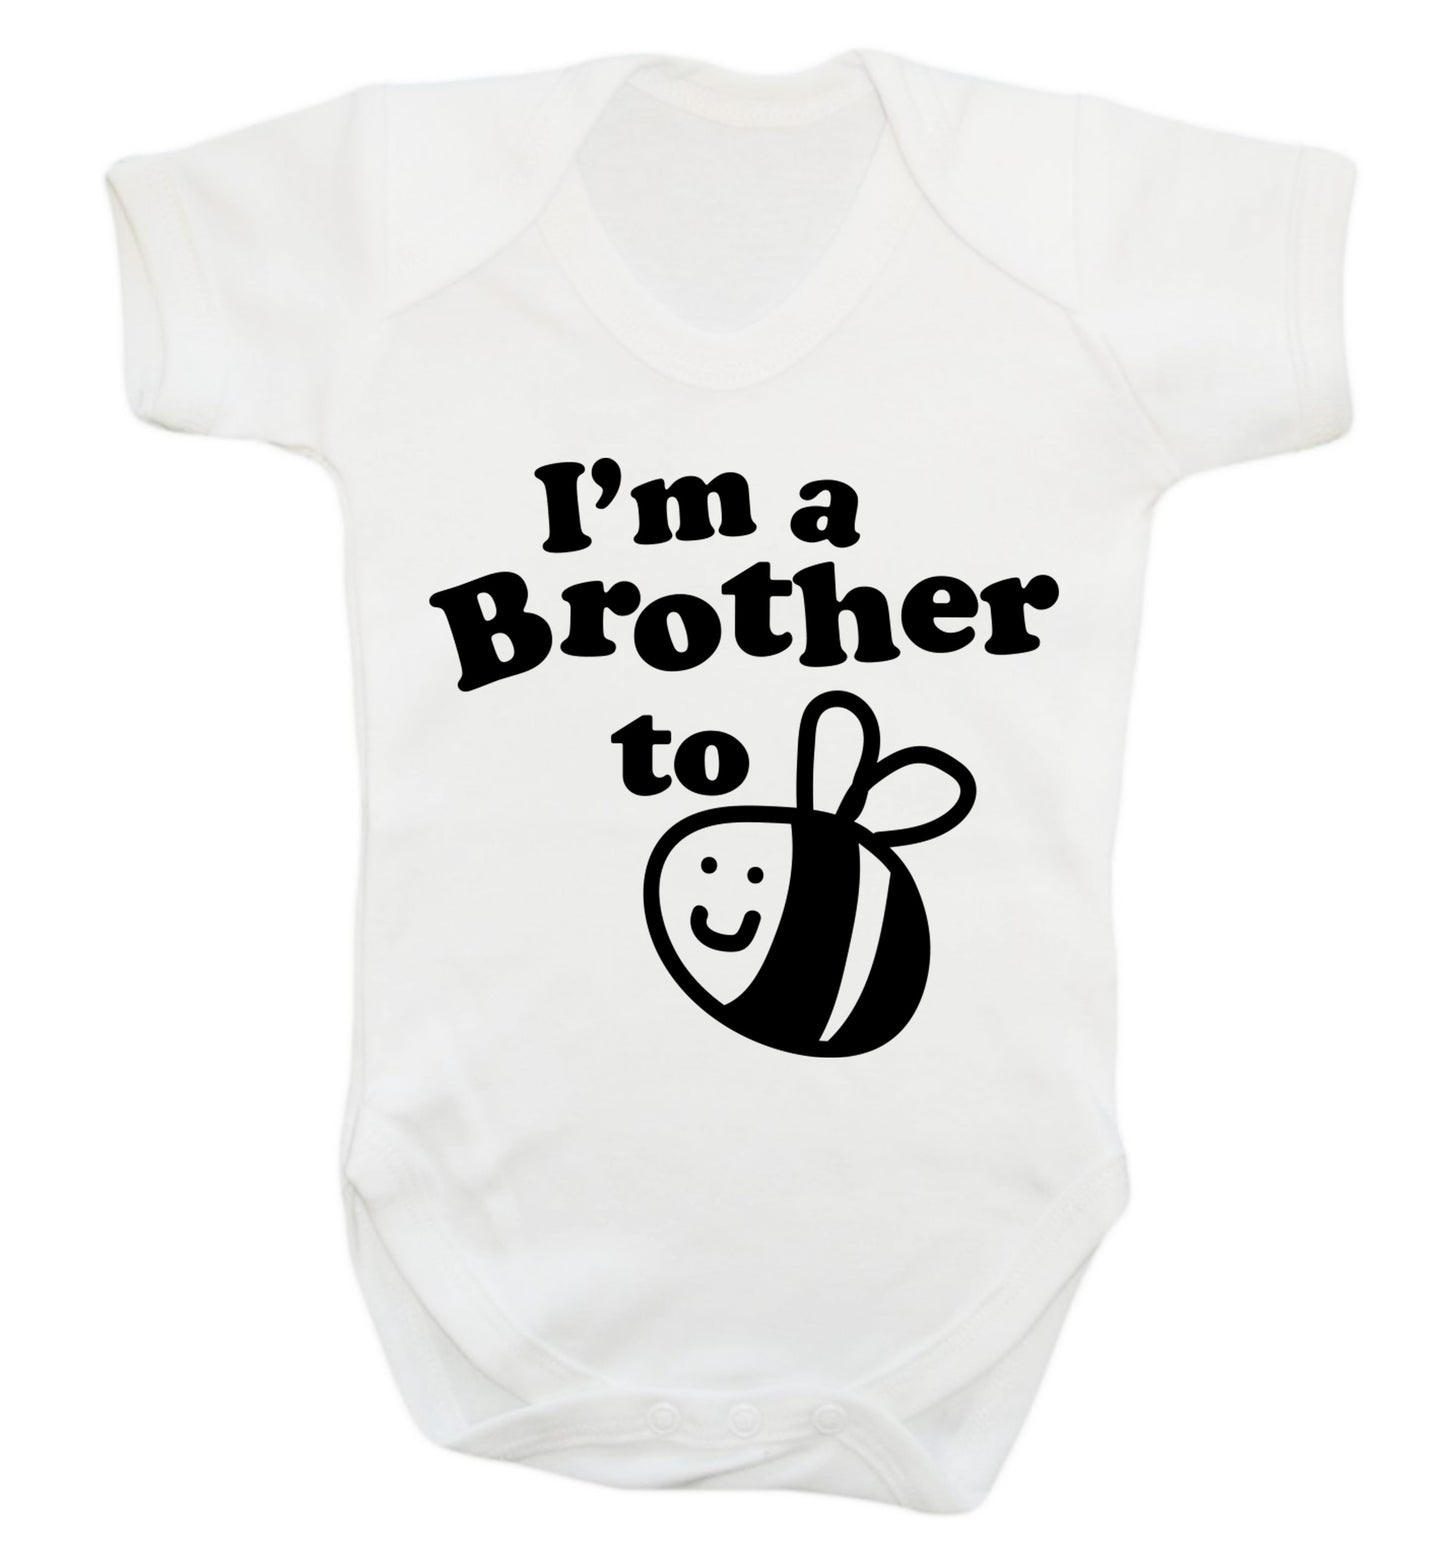 I'm a brother to be Baby Vest white 18-24 months